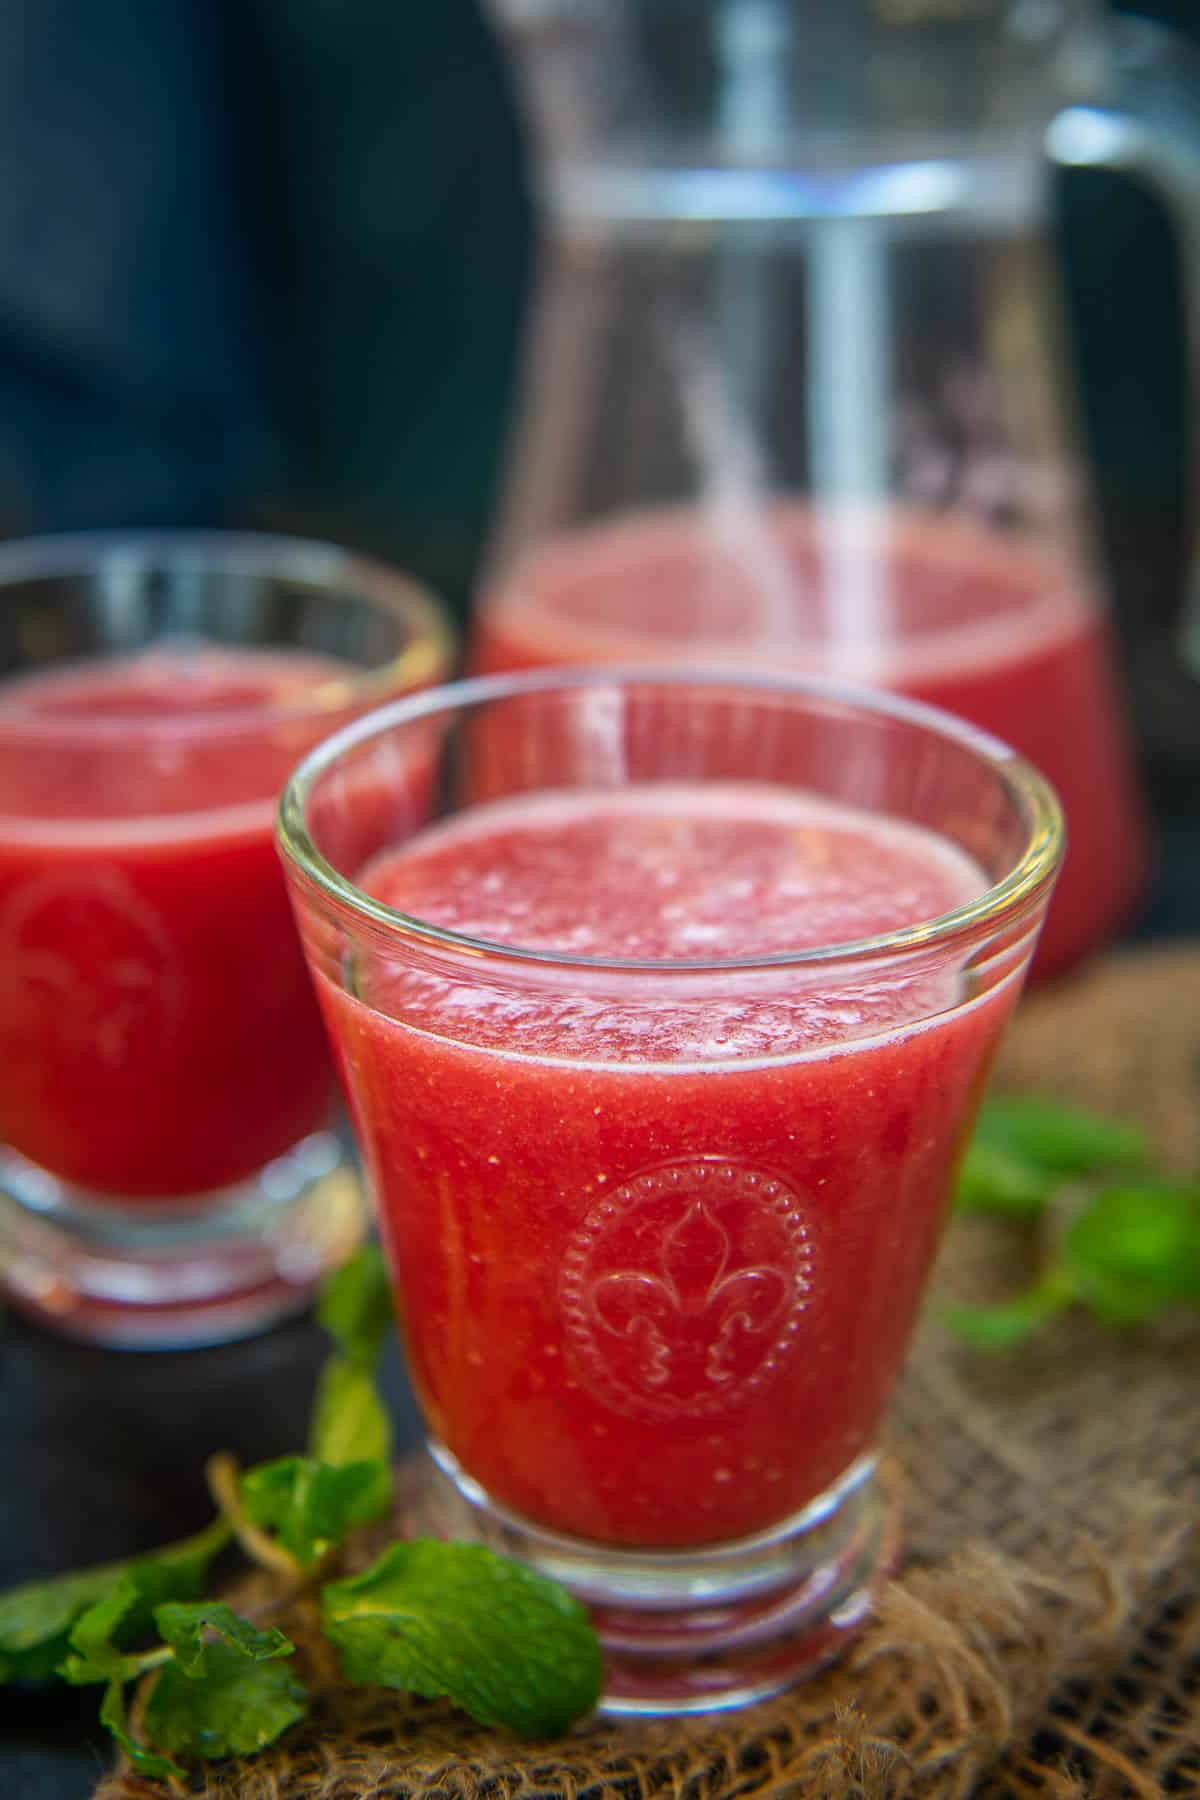 Watermelon Juice served in a glass.